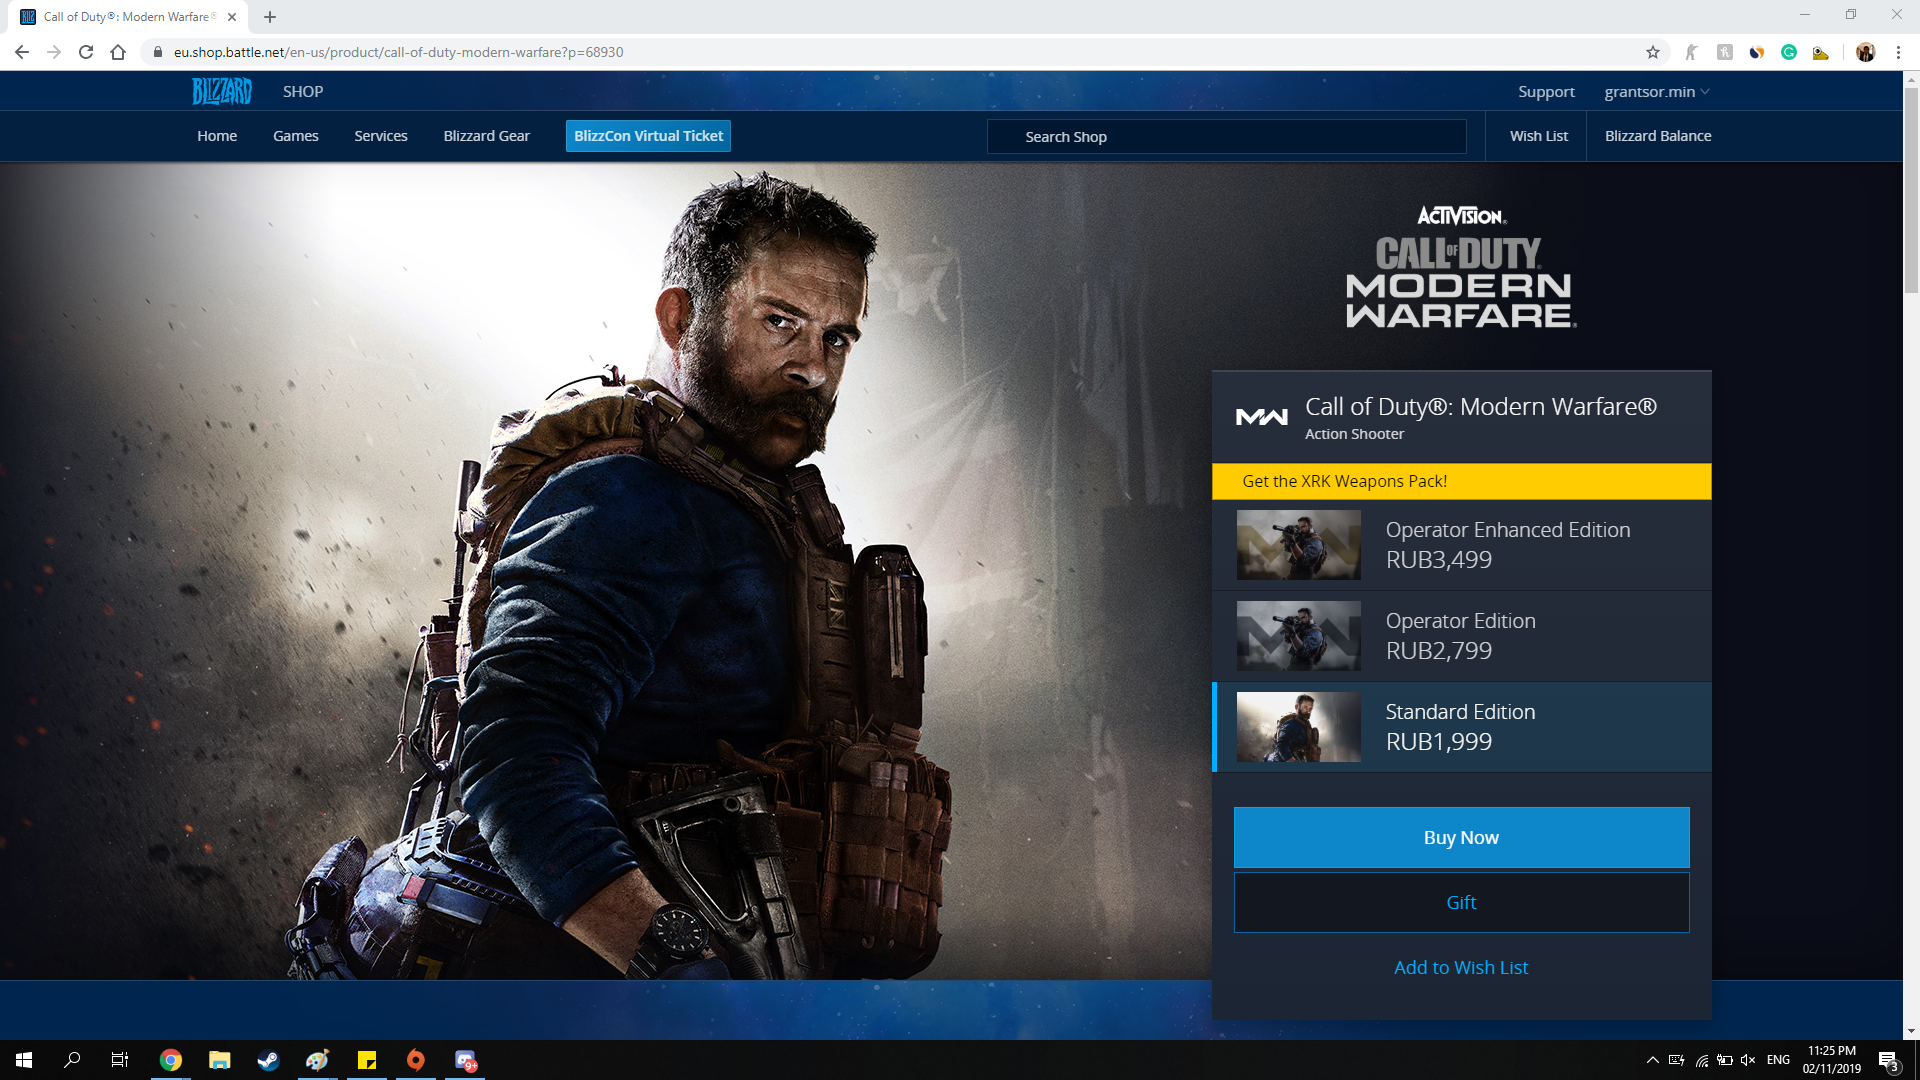 How To Buy Call Of Duty Modern Warfare For Php 1500 30 Usd Jam Online Philippines Tech News Reviews